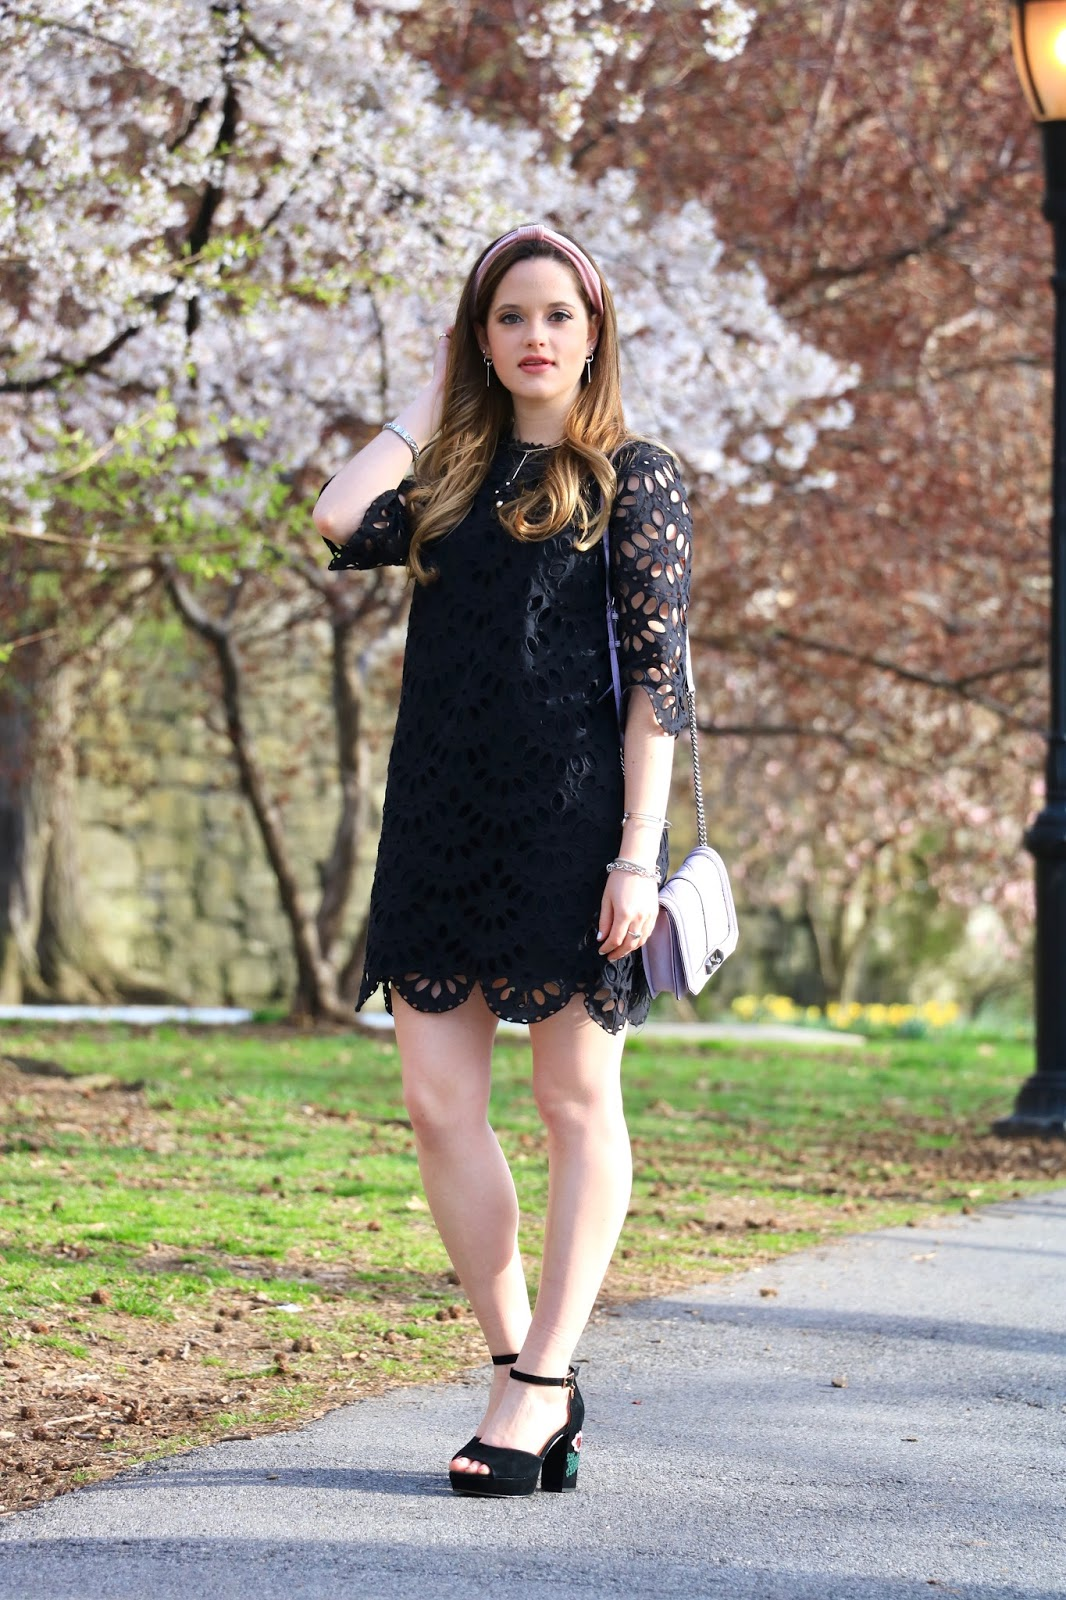 Nyc fashion blogger Kathleen Harper's spring street style